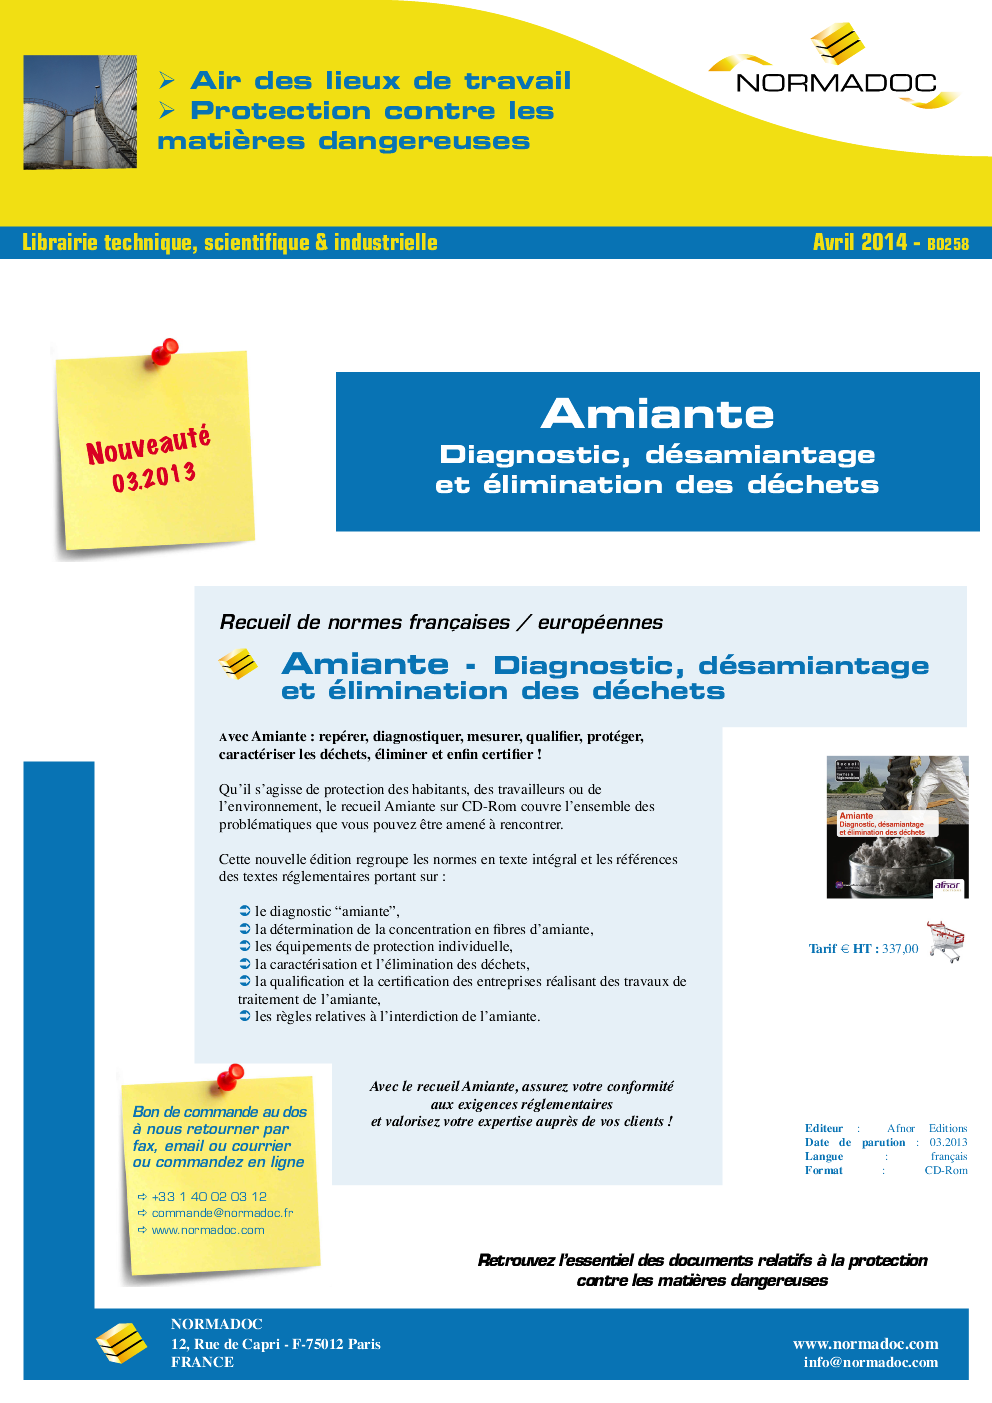 Diagnostic amiante et diagnostics immobiliers légaux